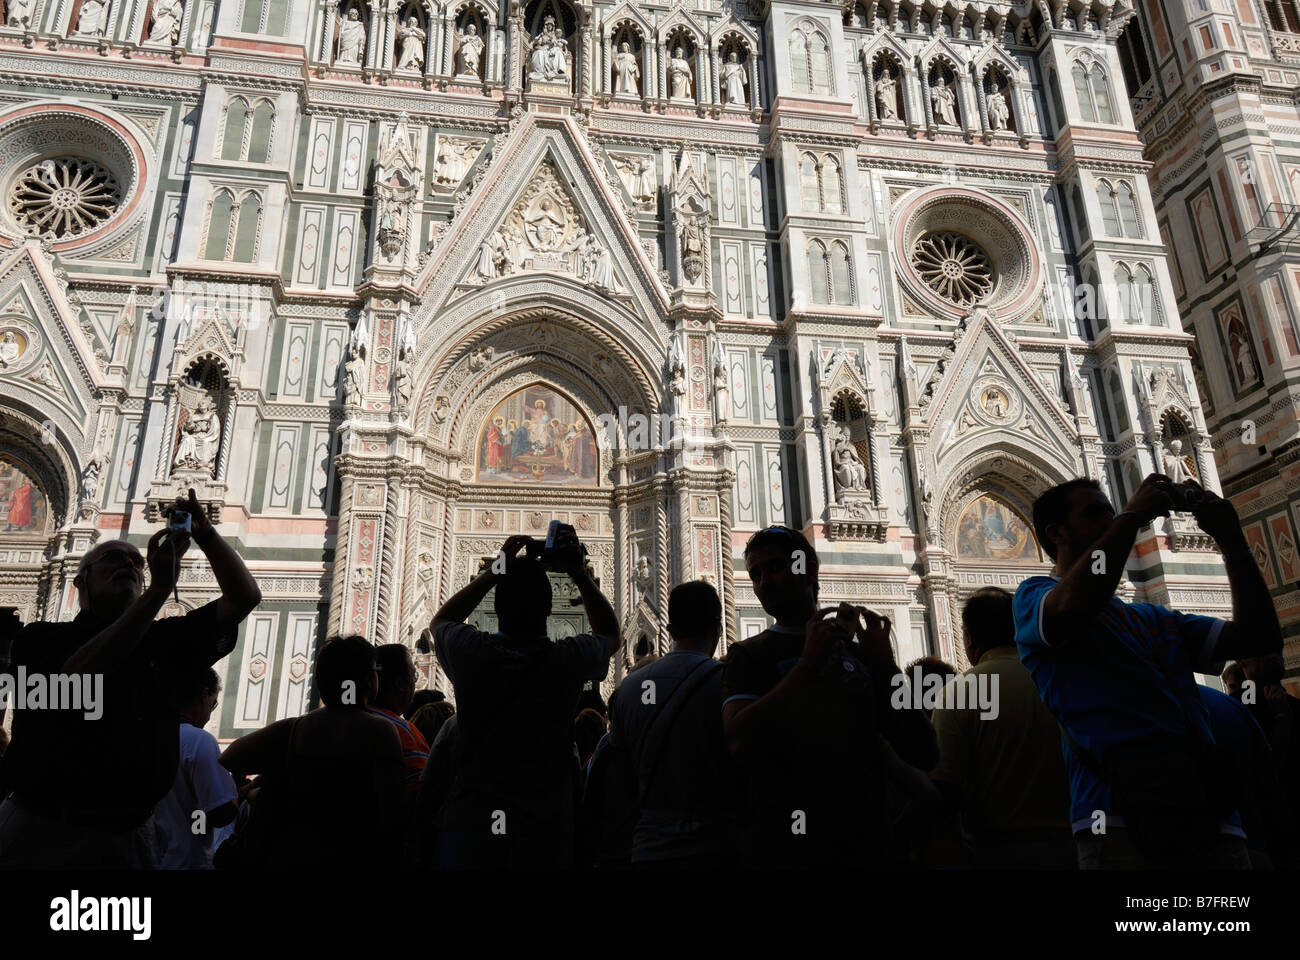 Florence Italy Tourists in front of the Duomo Santa Maria del Fiore - Stock Image